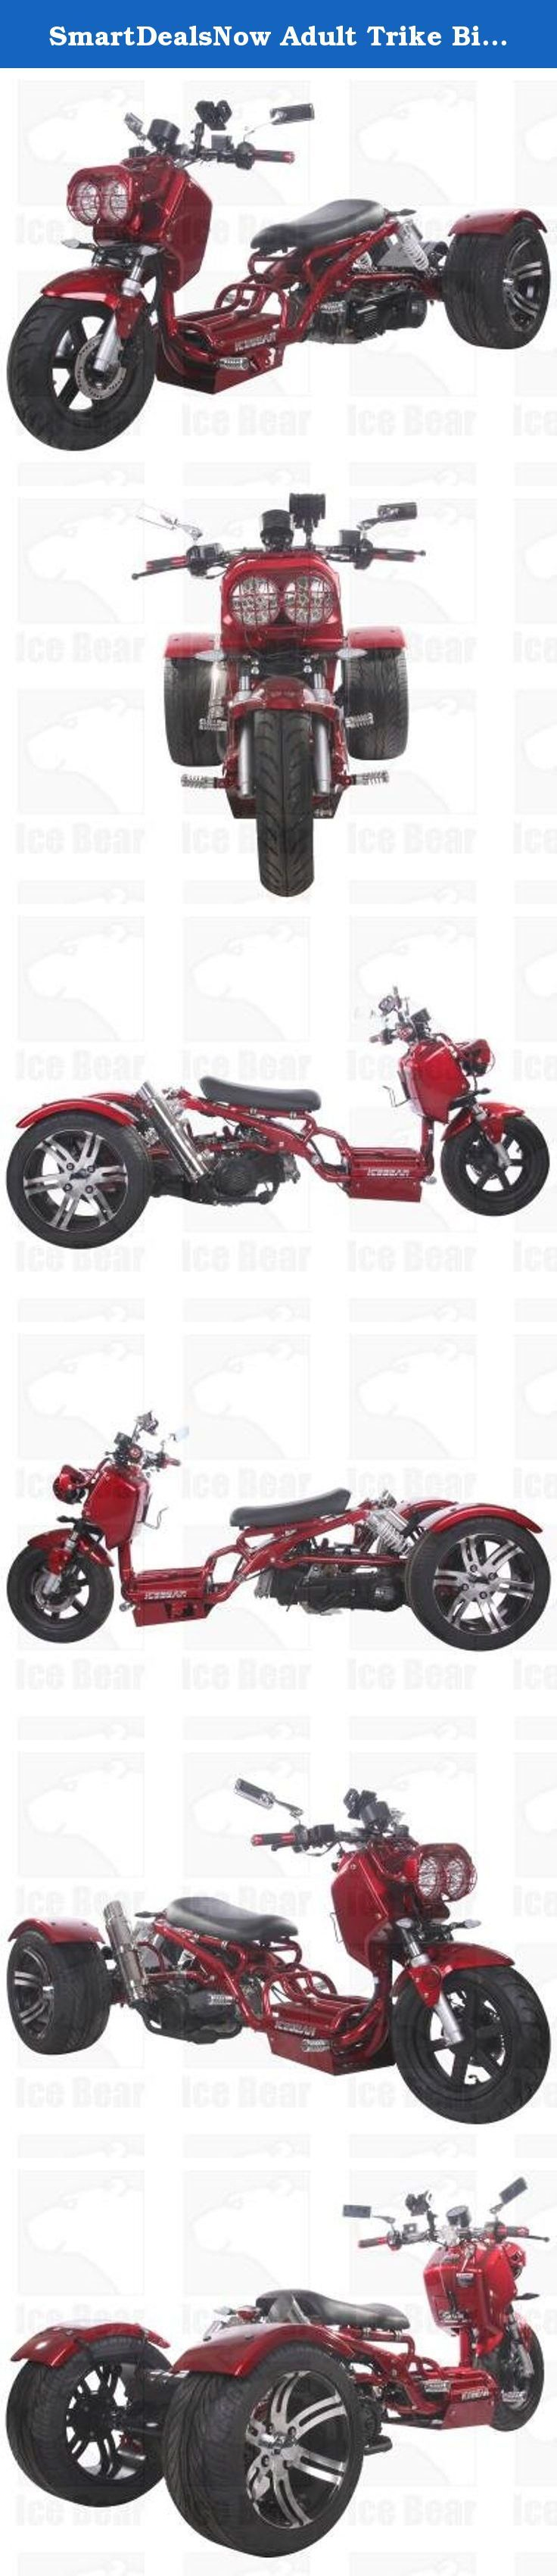 SmartDealsNow Adult Trike Bike PST 150-19N Ice Bear Branded W/ Single Cylinder , 4-Stroke Engine type (Metallic Burgundy). This PST150-19N Trike Comes With Single Cylinder , 4-Stroke Engine type. This trike has 149.5cc Piston Displacement. This trike can go up to maximum speed of 49.7mph depending upon the road conditions.